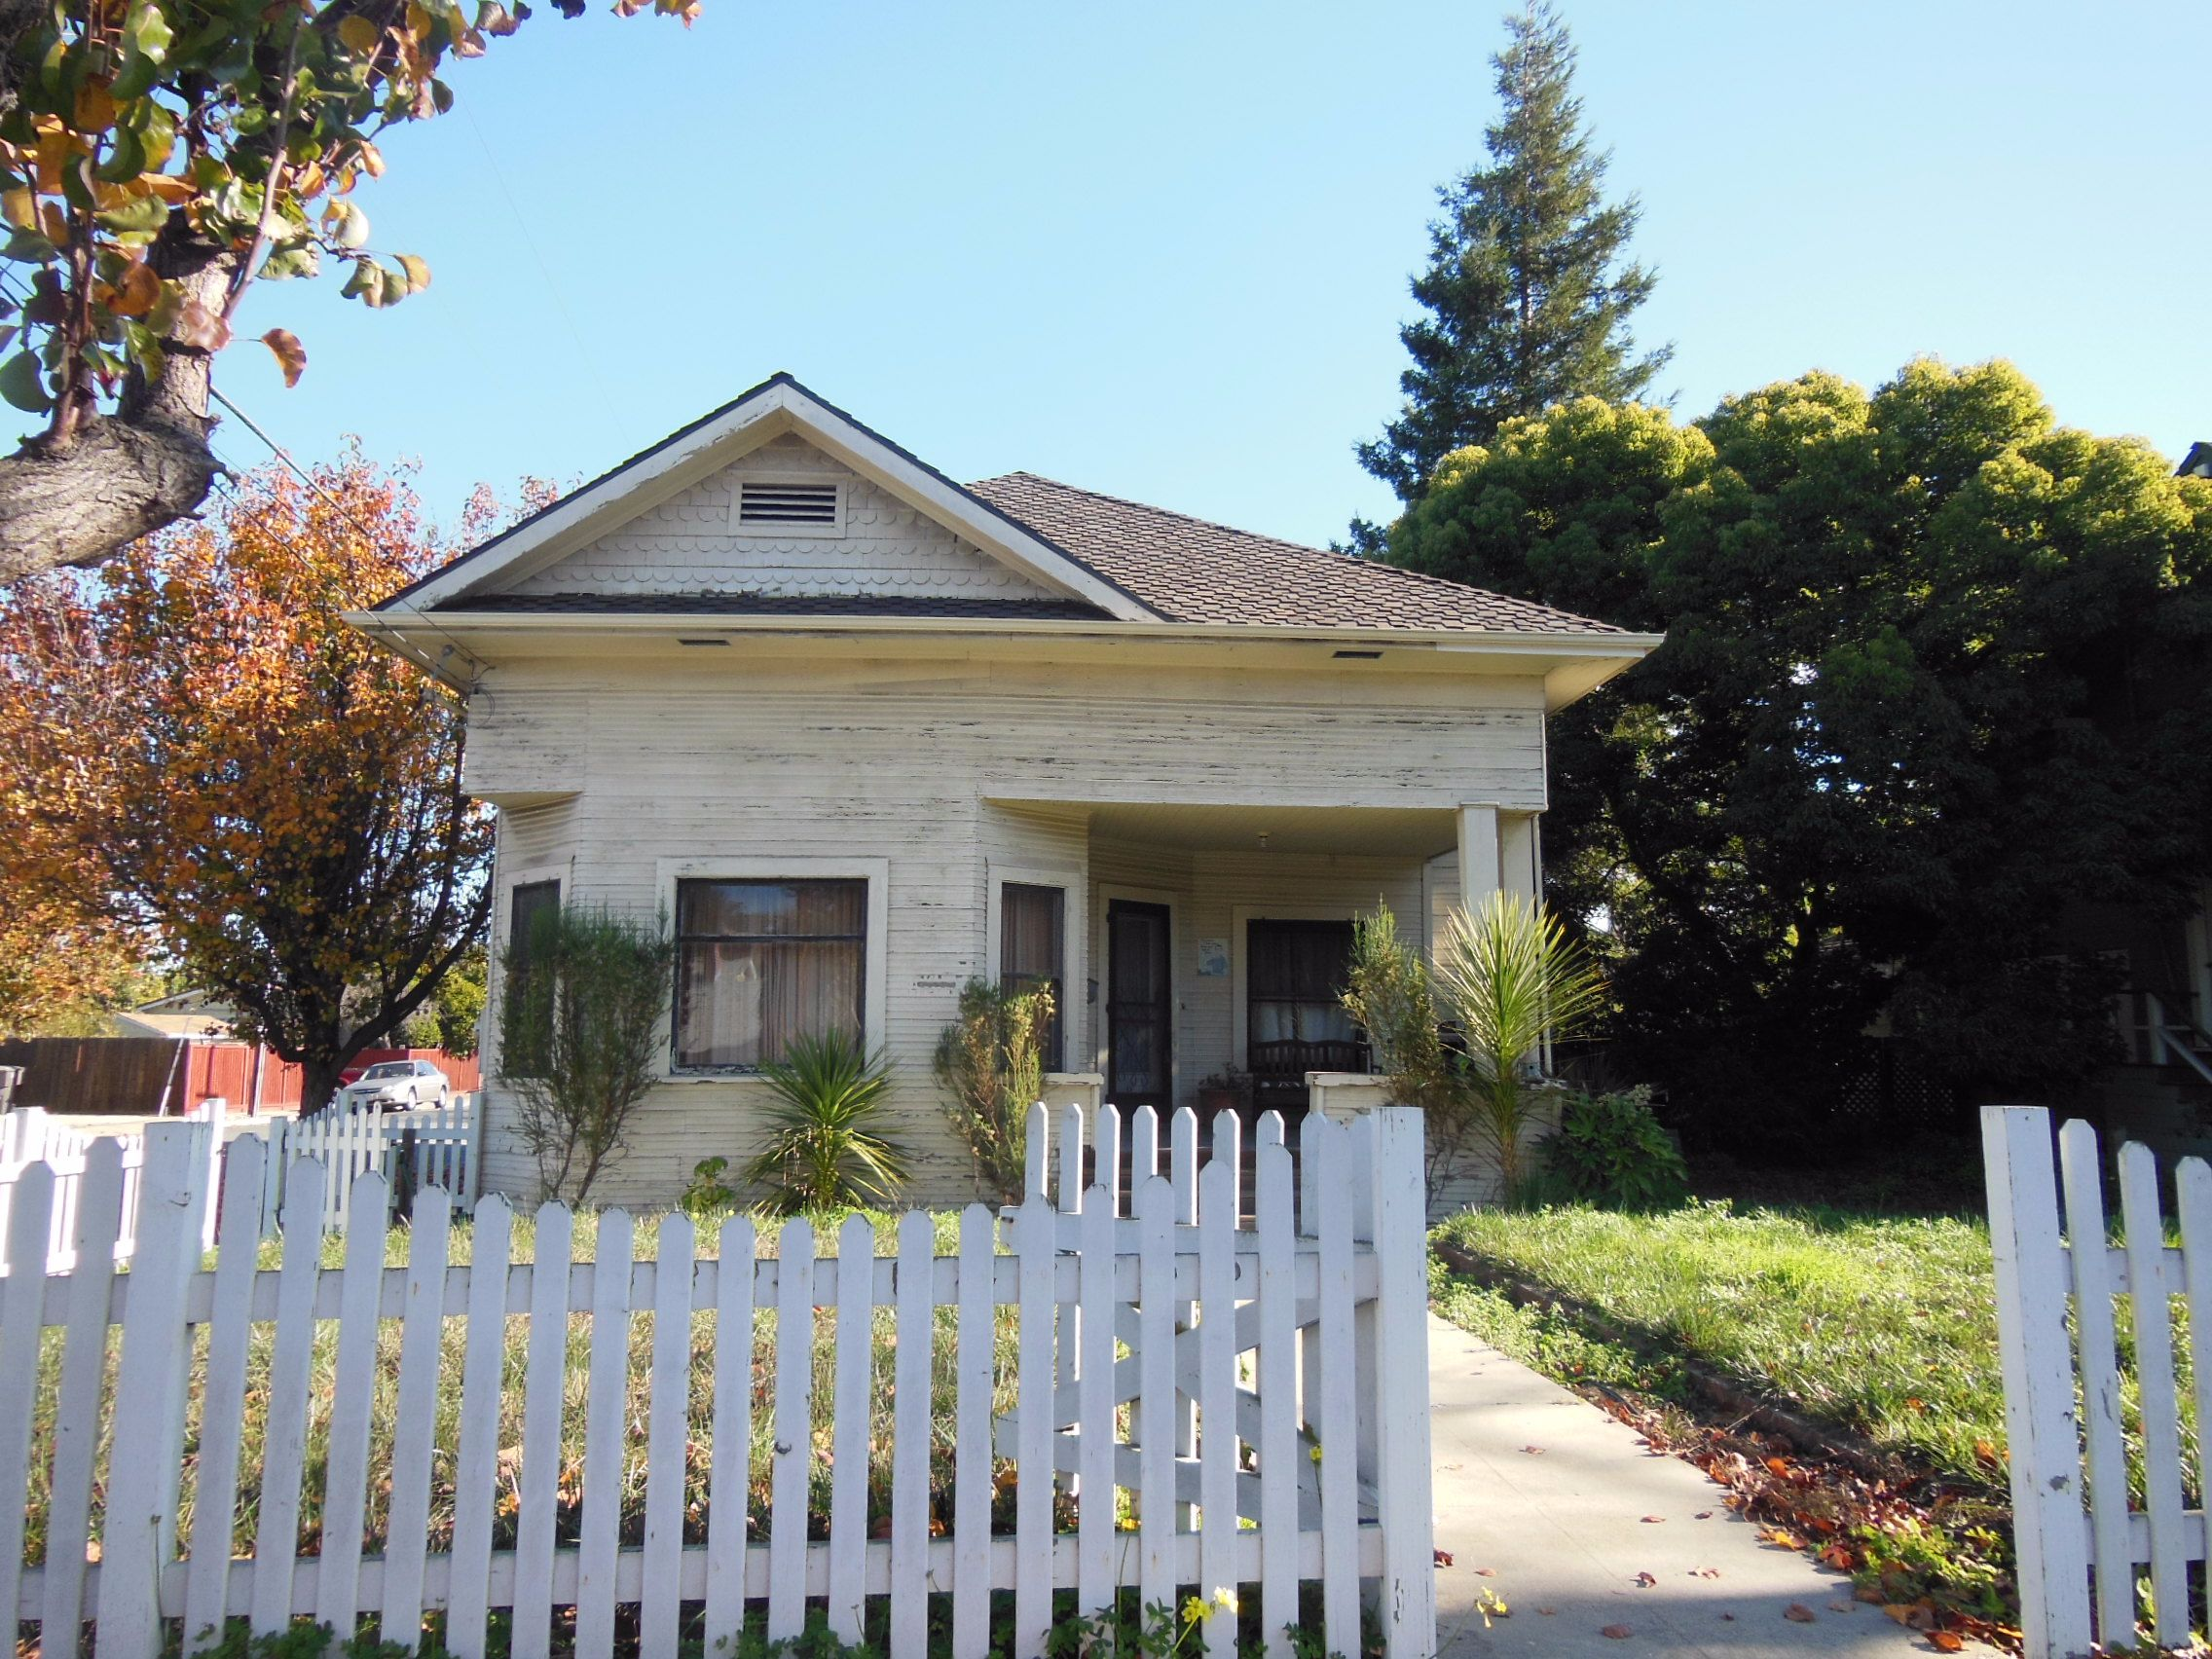 300 N Central Ave, Campbell, CA 95008